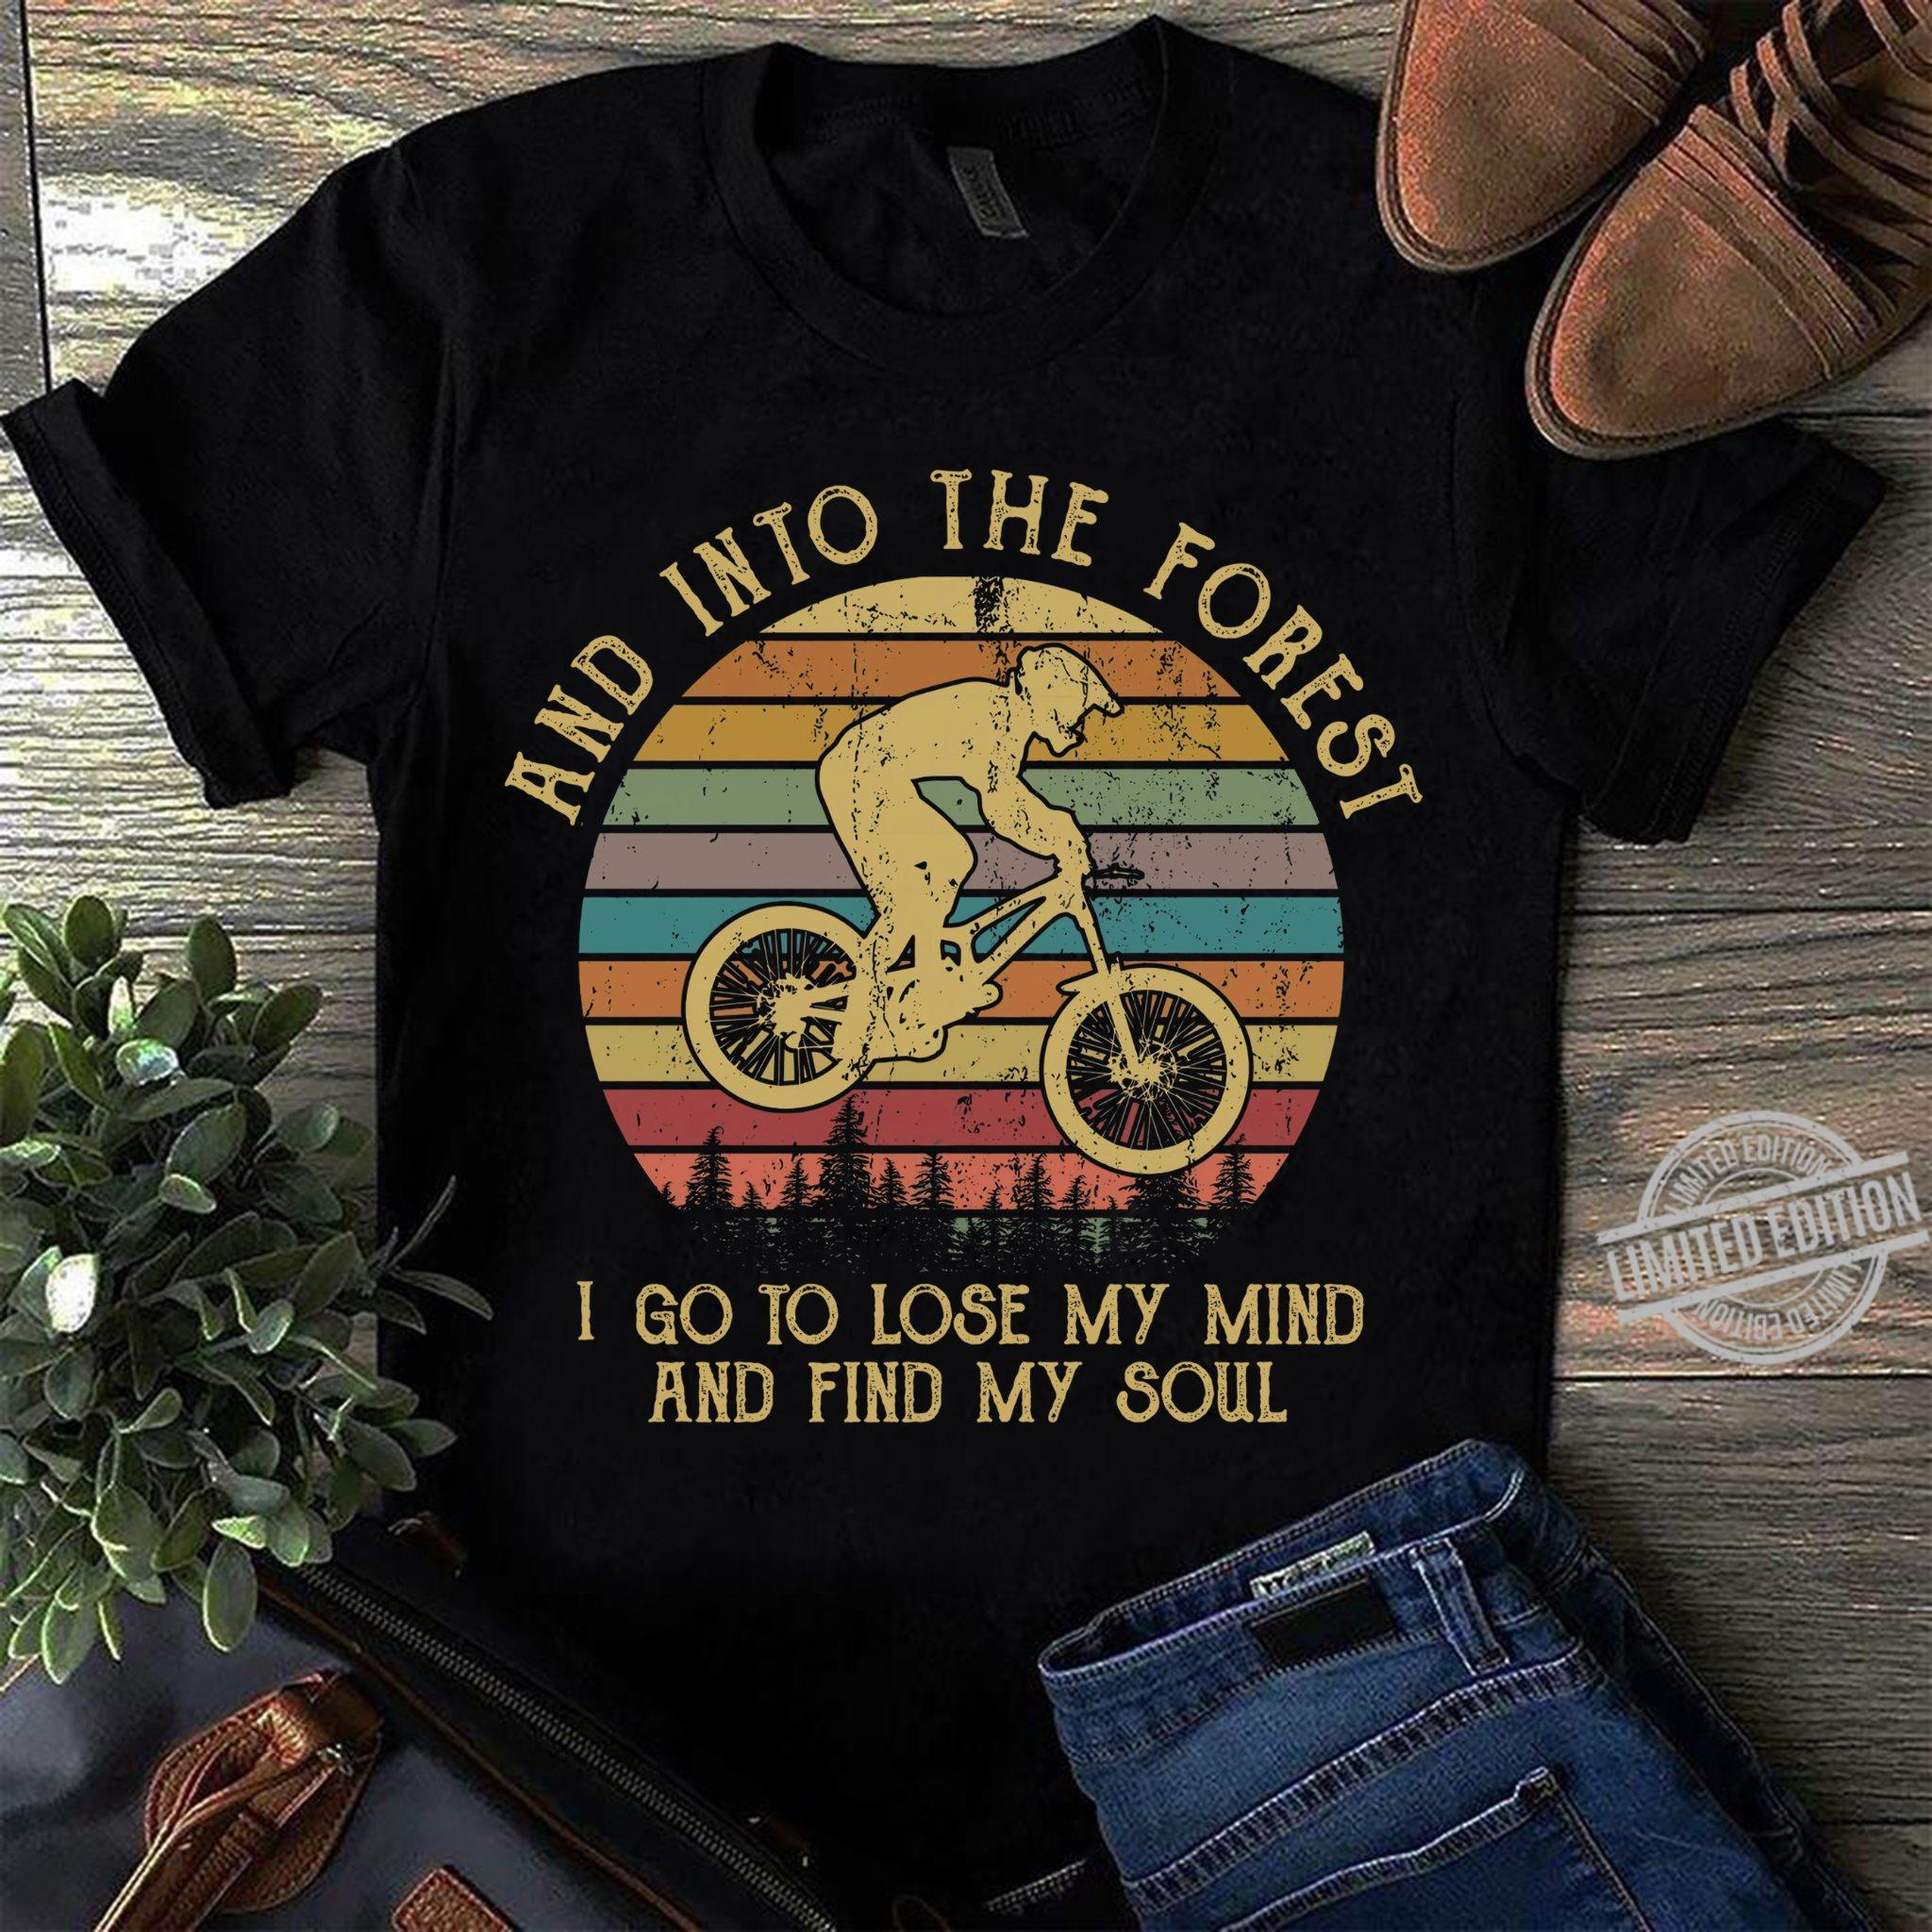 And into The Forest I Go To Lose My Mind And Find My Soul Women T-Shirt